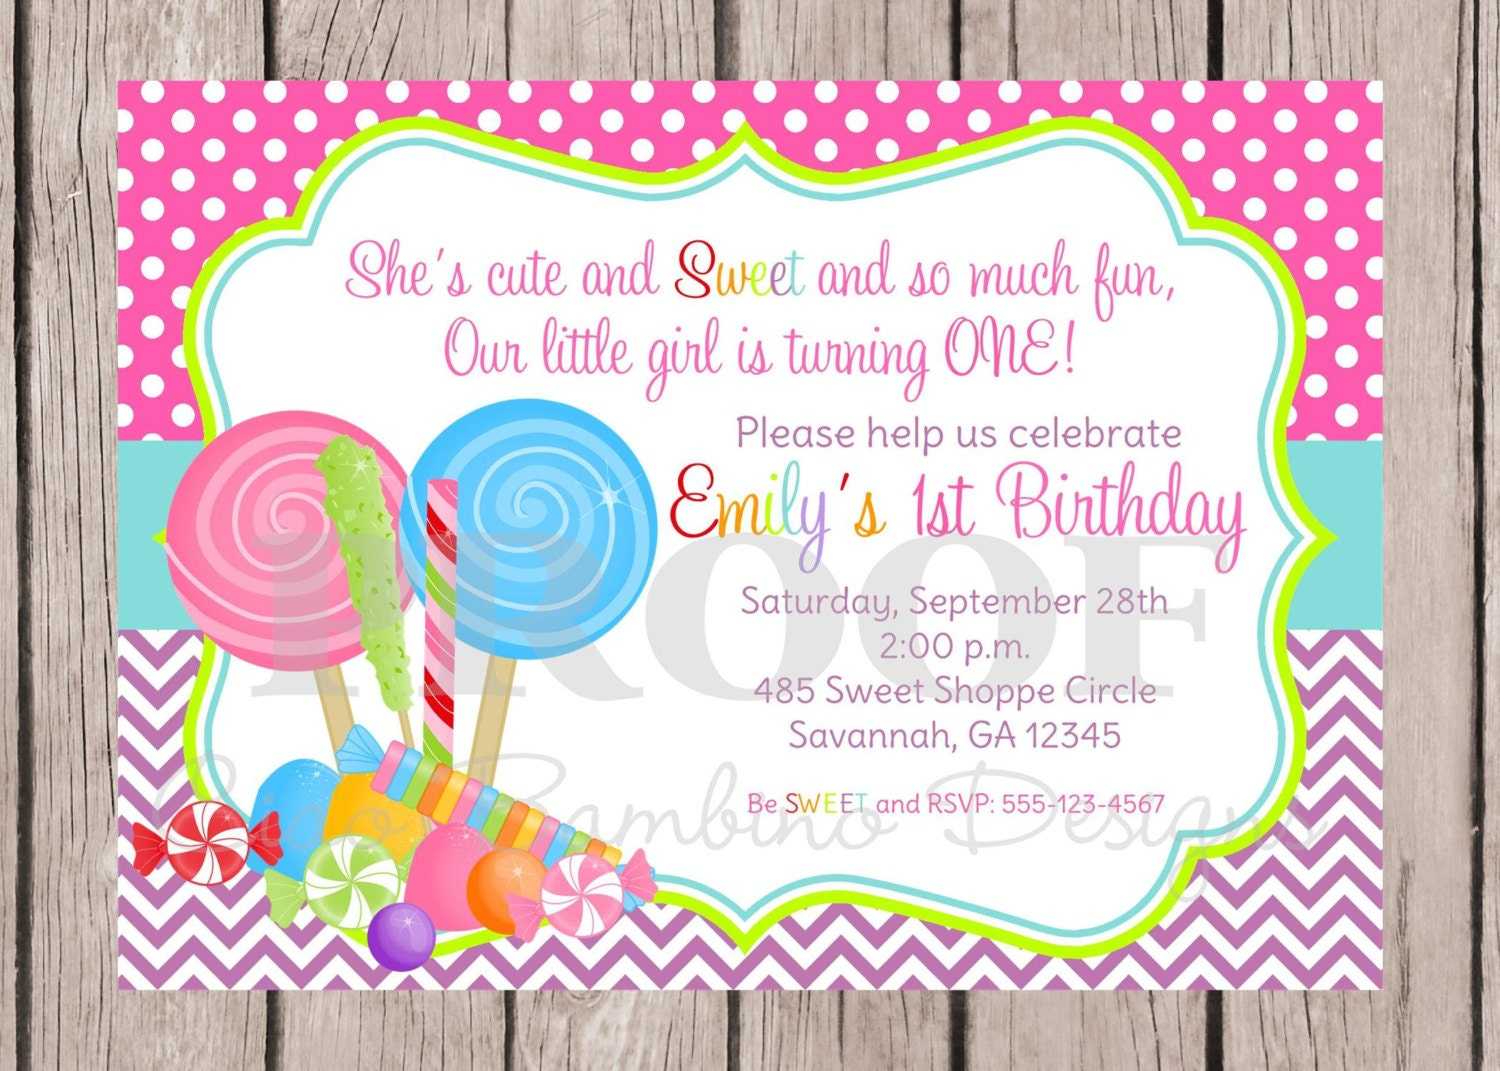 Invitation Creator Free Printable with adorable invitation design